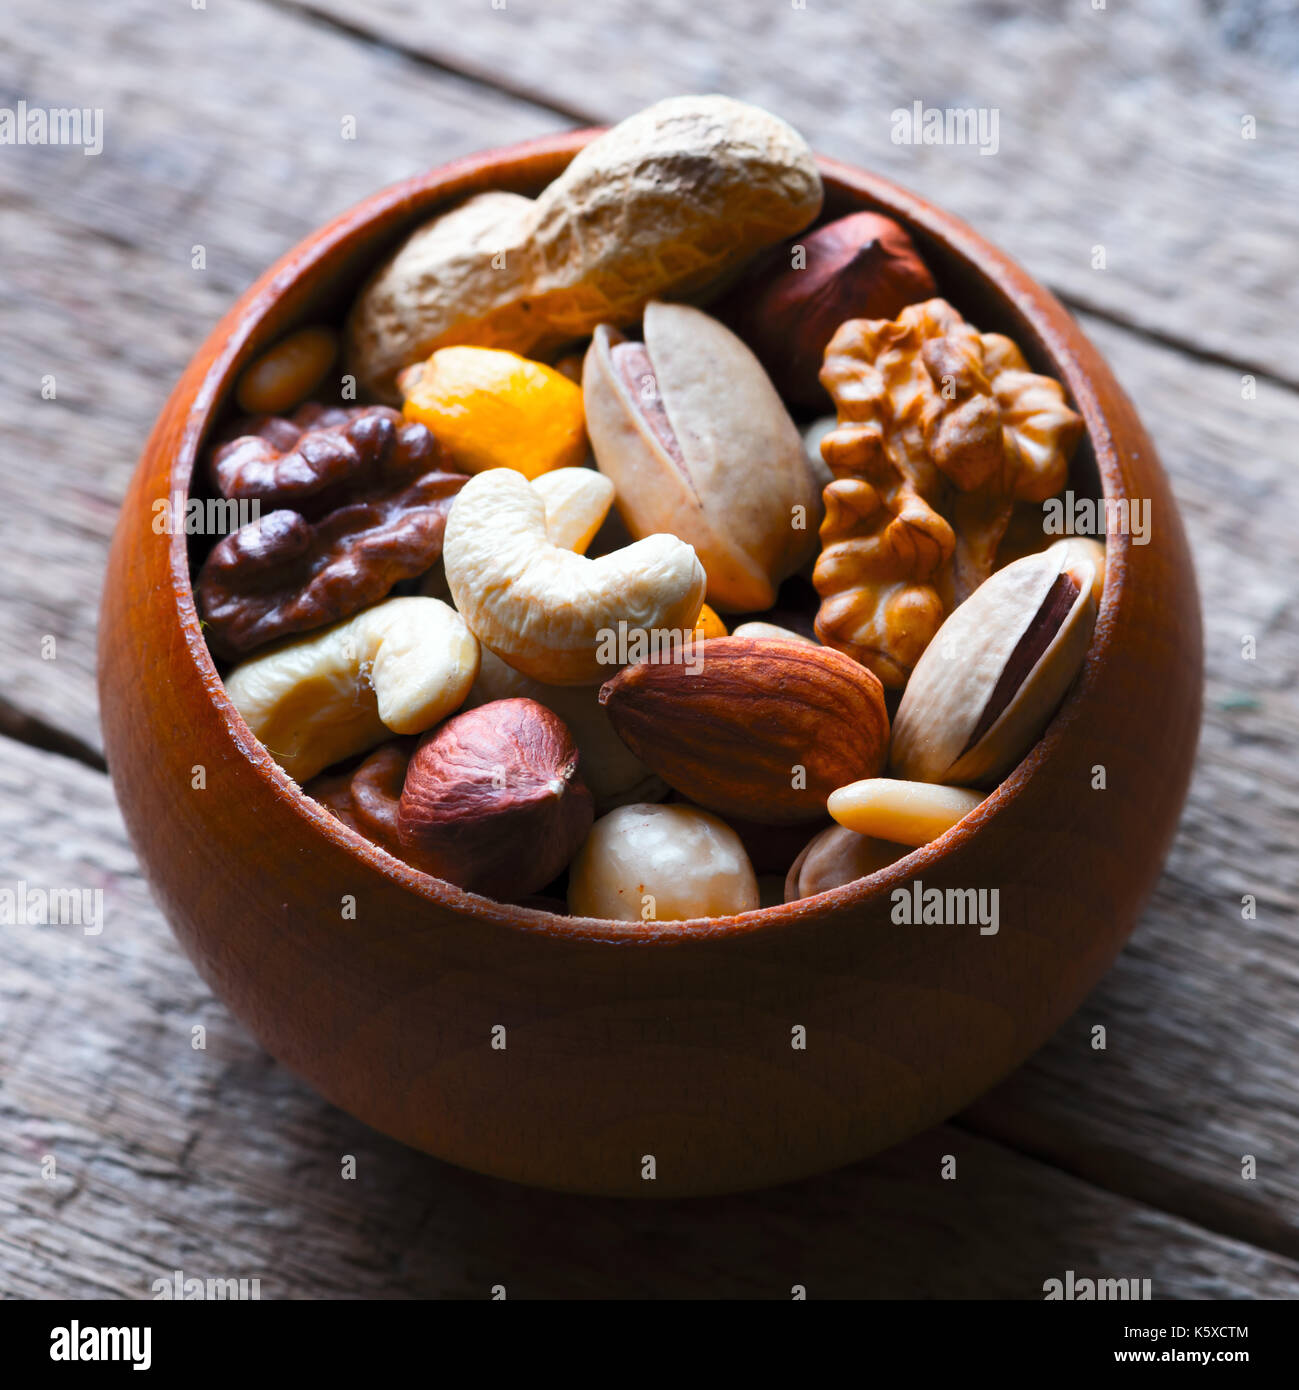 Mixed nuts in wooden bowl - Stock Image